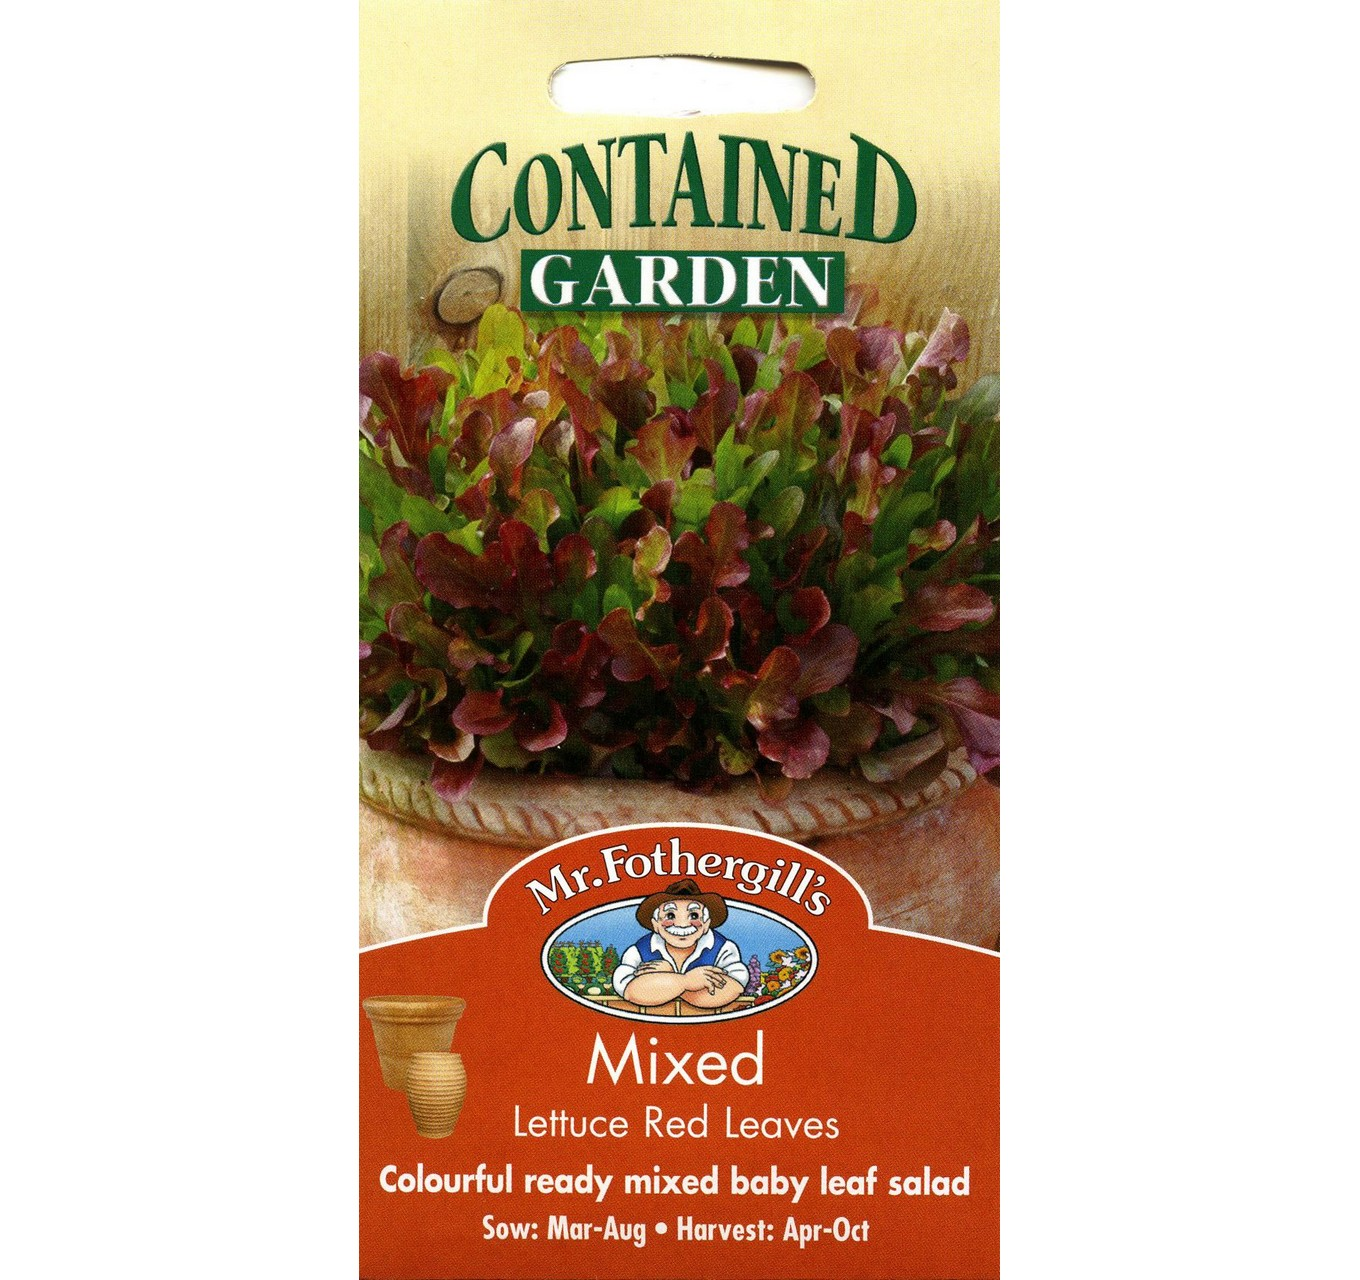 Mixed Lettuce Red Leaves